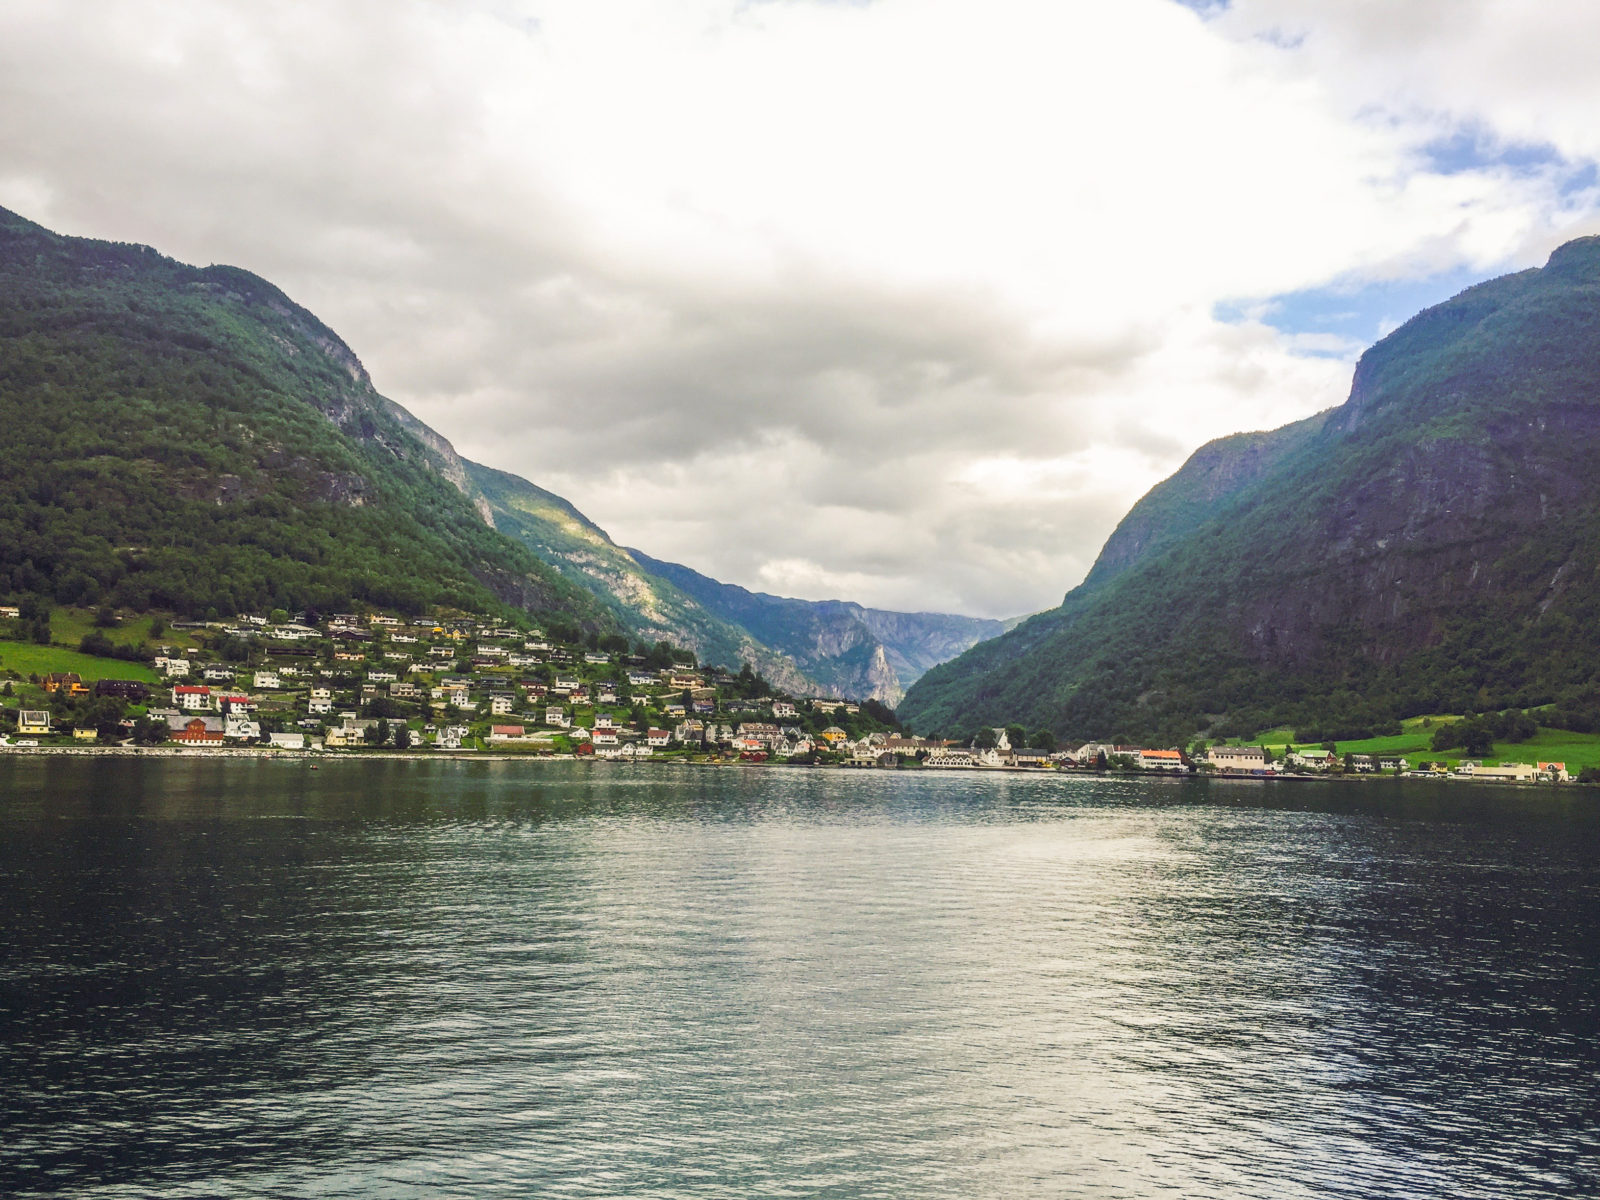 Sognefjord Cruise from Flam to Gudvengen